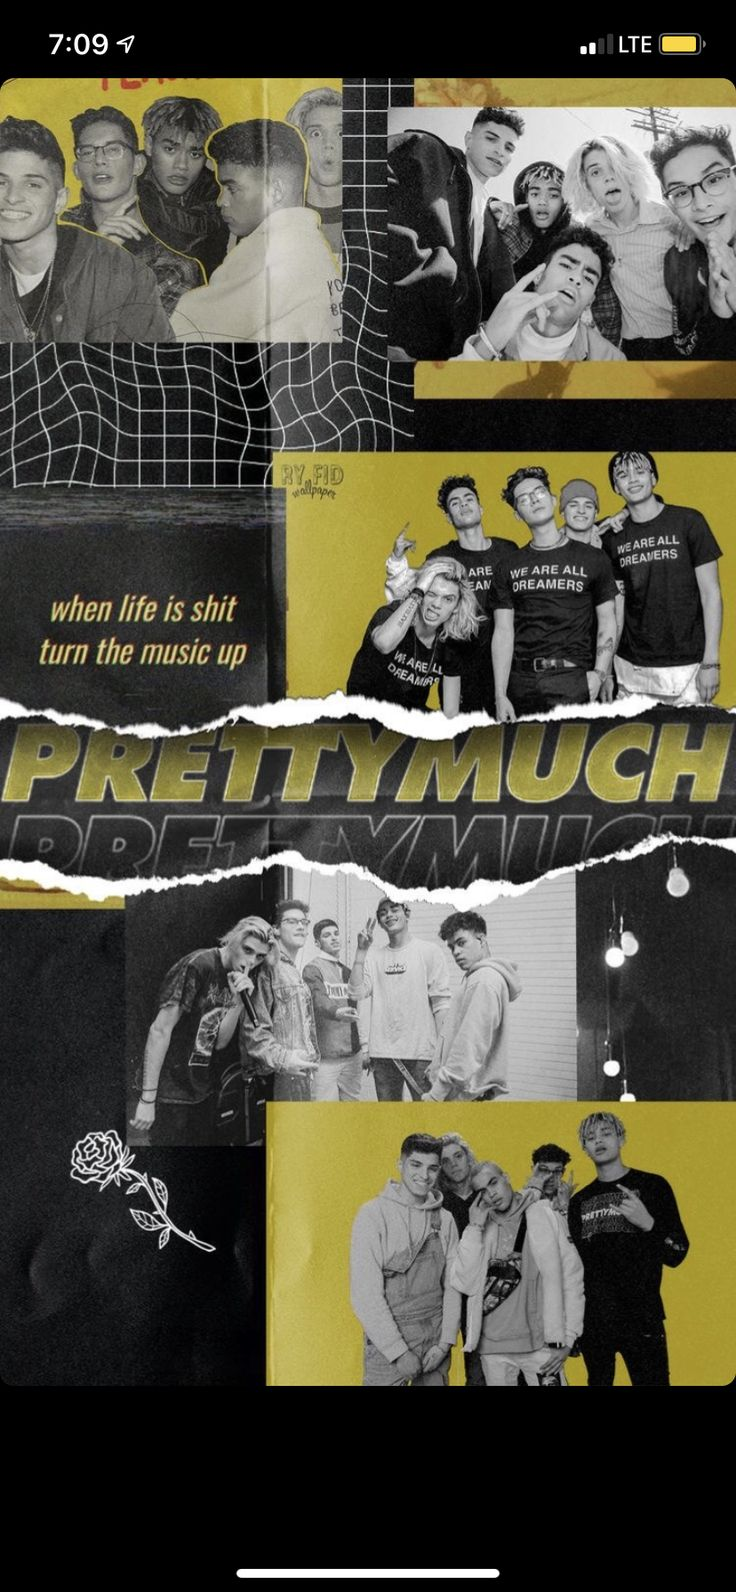 Pin by Tatianah Harmon on prettymuch Iphone wallpaper